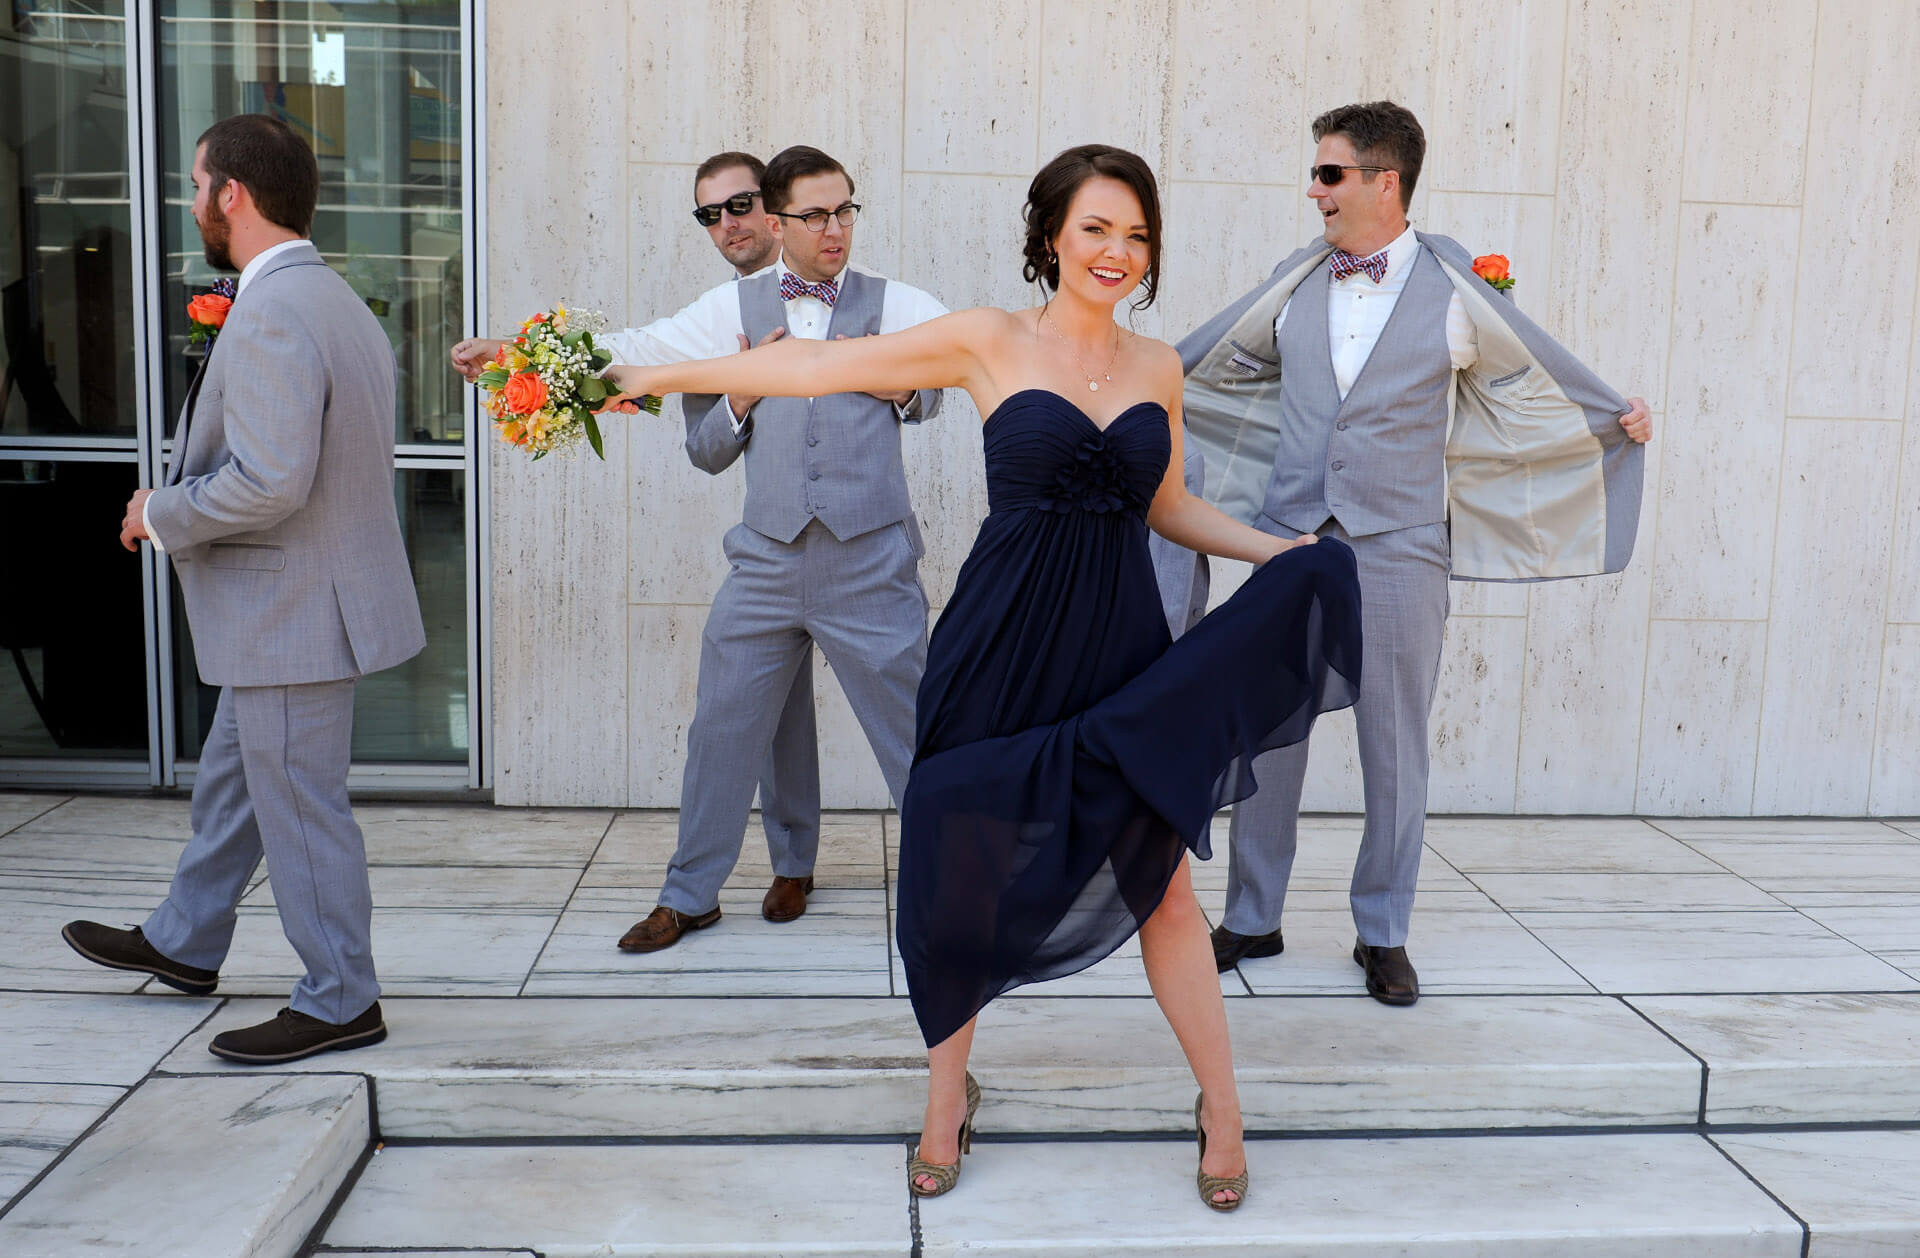 Documentary wedding photo of a bridesmaid taking full advantage of the breeze during a hot summer wedding in Detroit, Michigan.